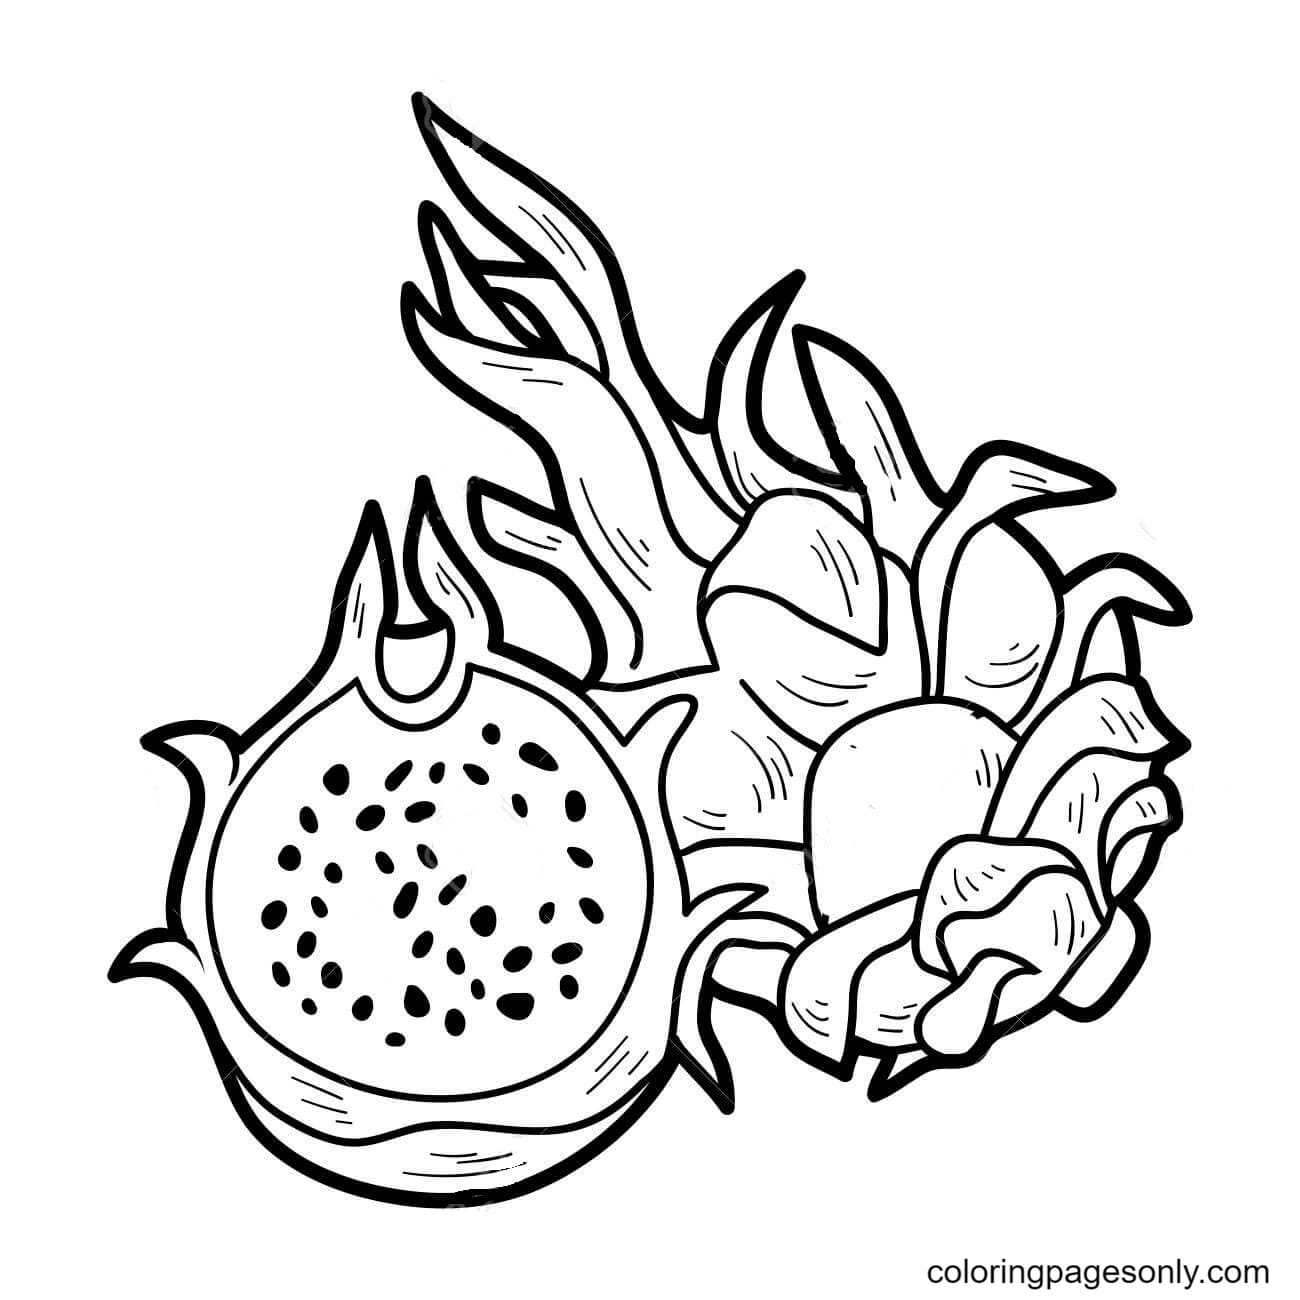 DragonFruit Coloring Page